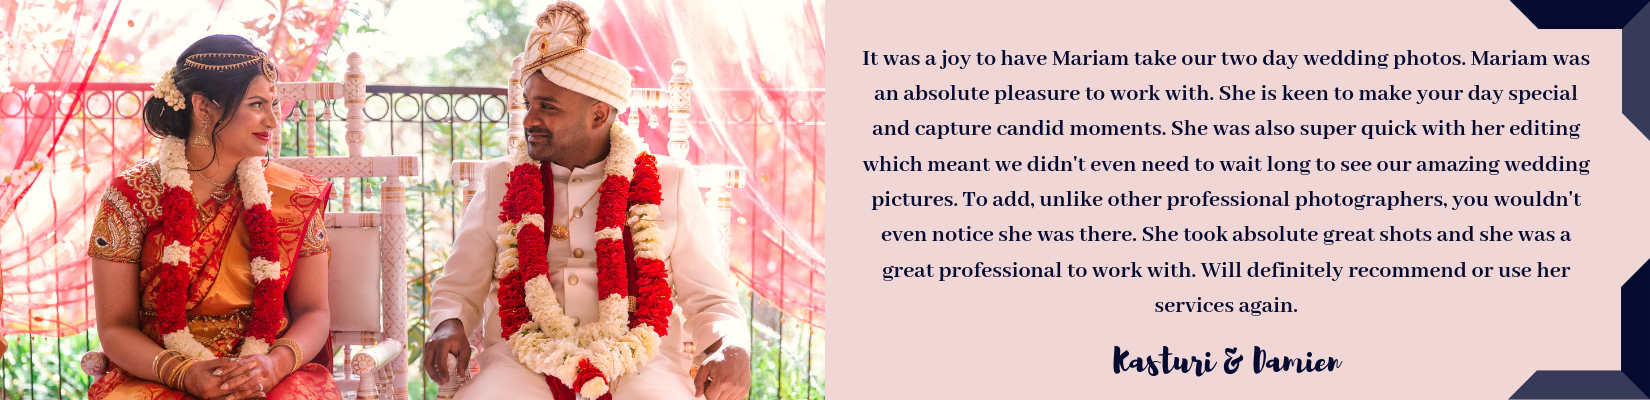 Photographed With Love Indian Wedding Photography Testimonials